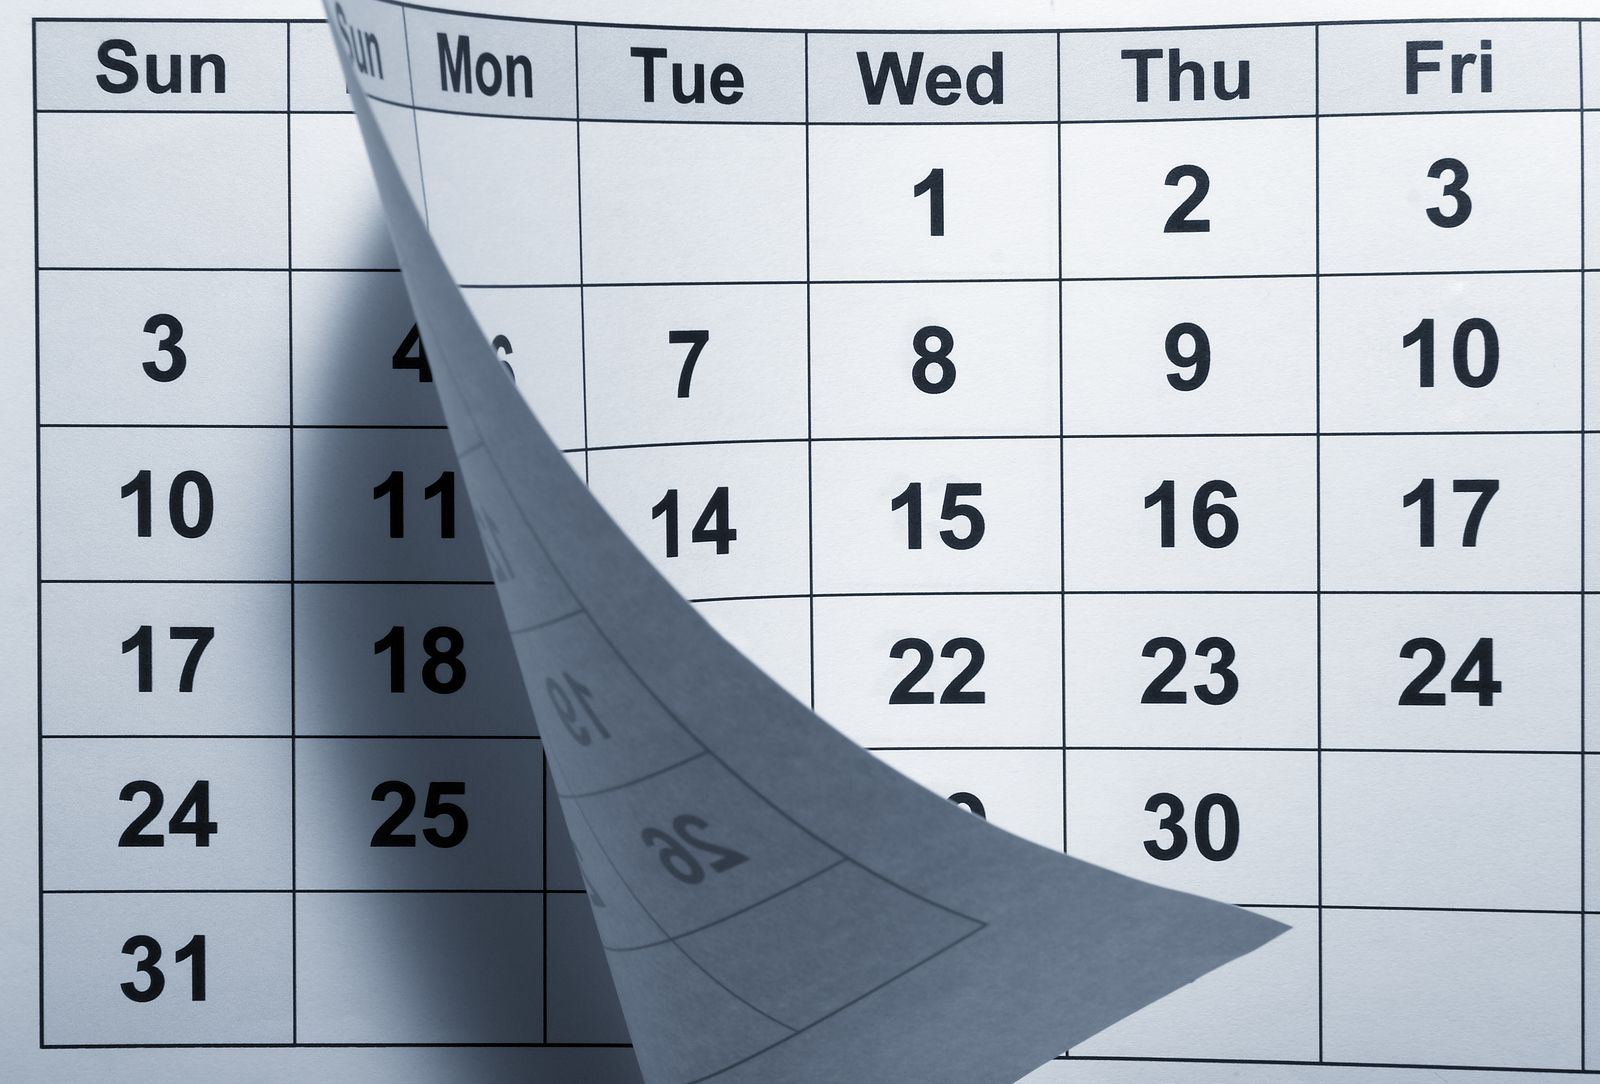 Content planning with an editorial calendar https://escata.co.uk/blog/content-planning-editorial-calendar/